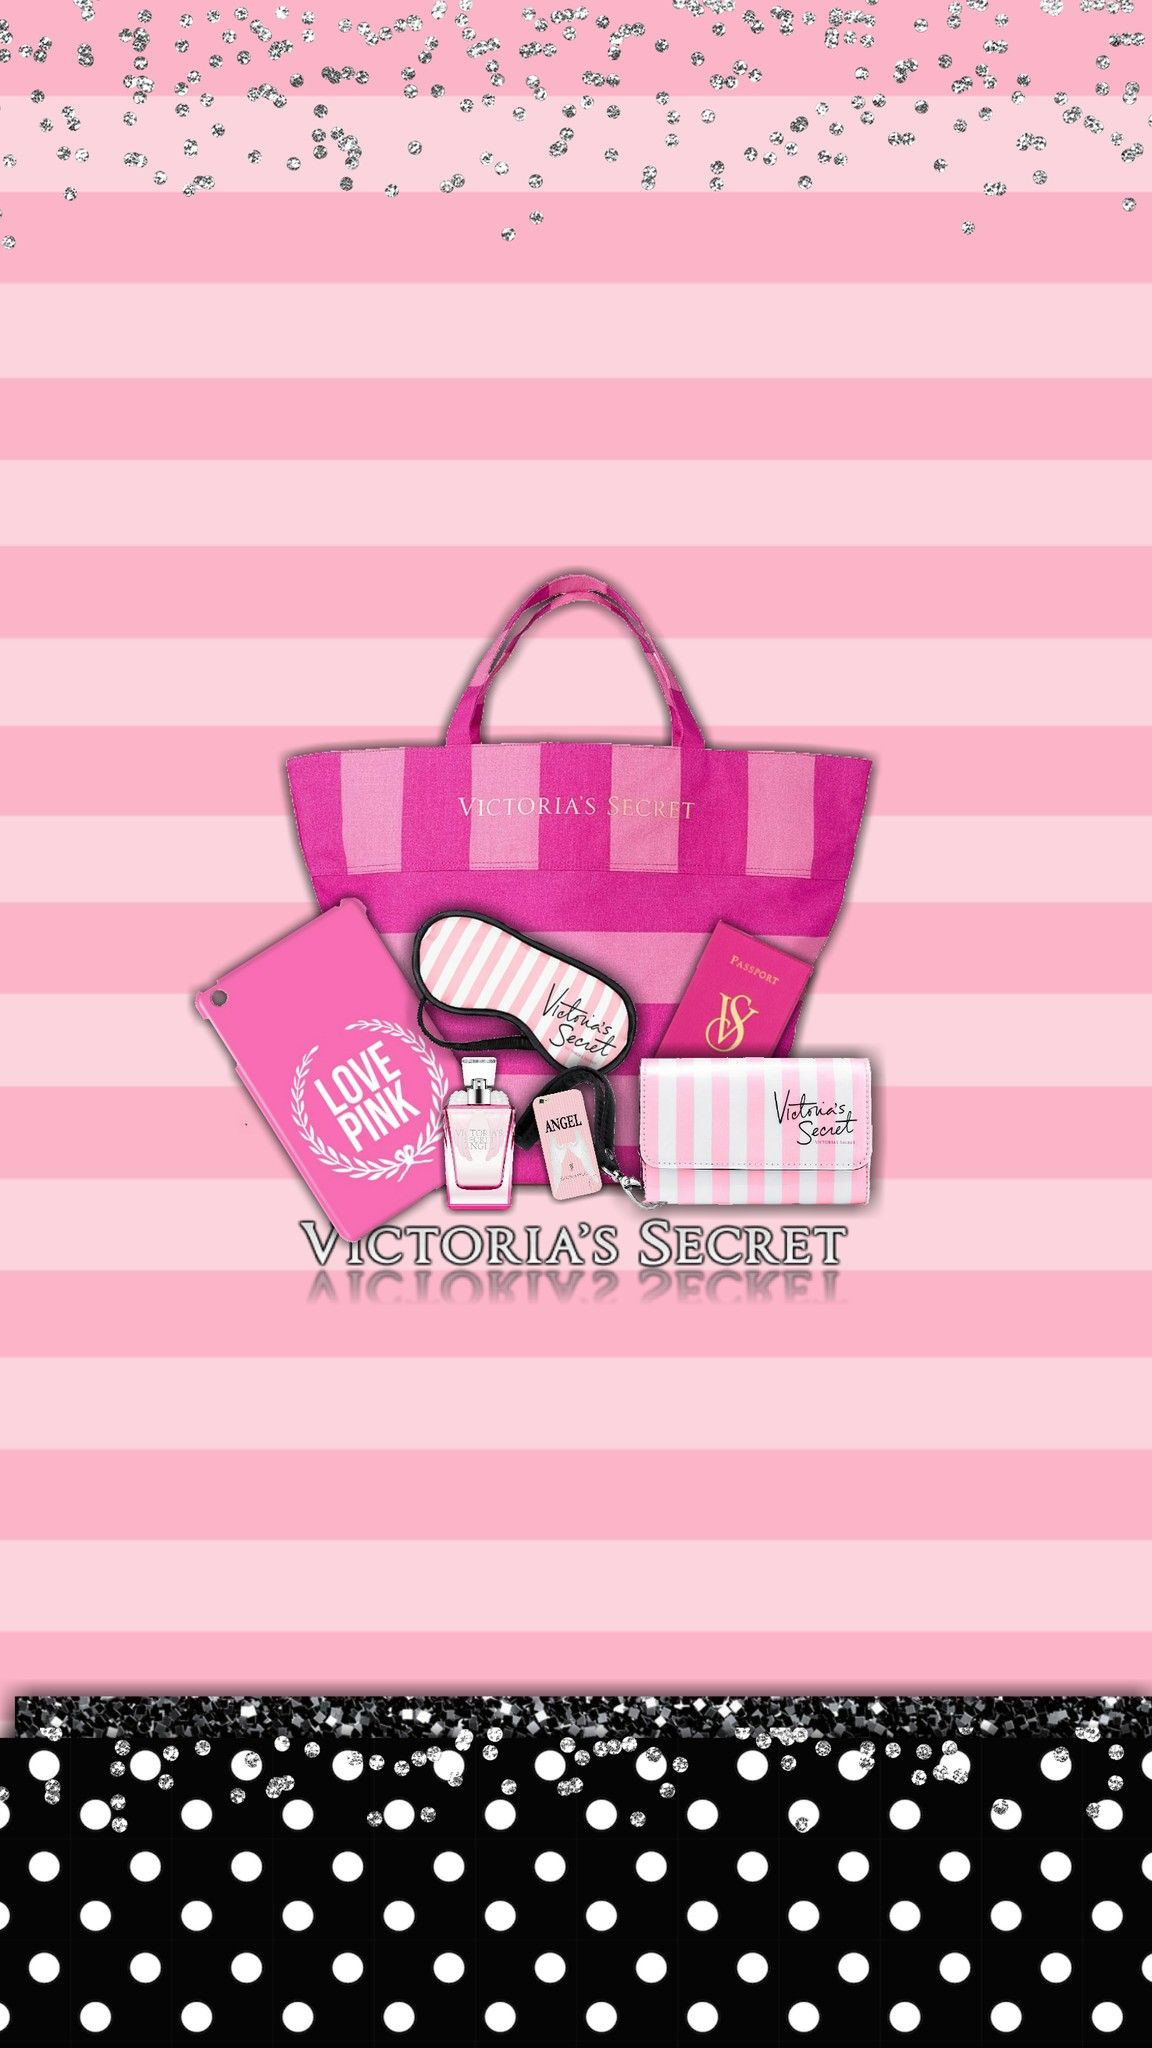 Dazzle My Droid Tjn Find This Pin And More On Victoria Secret Wallpaper